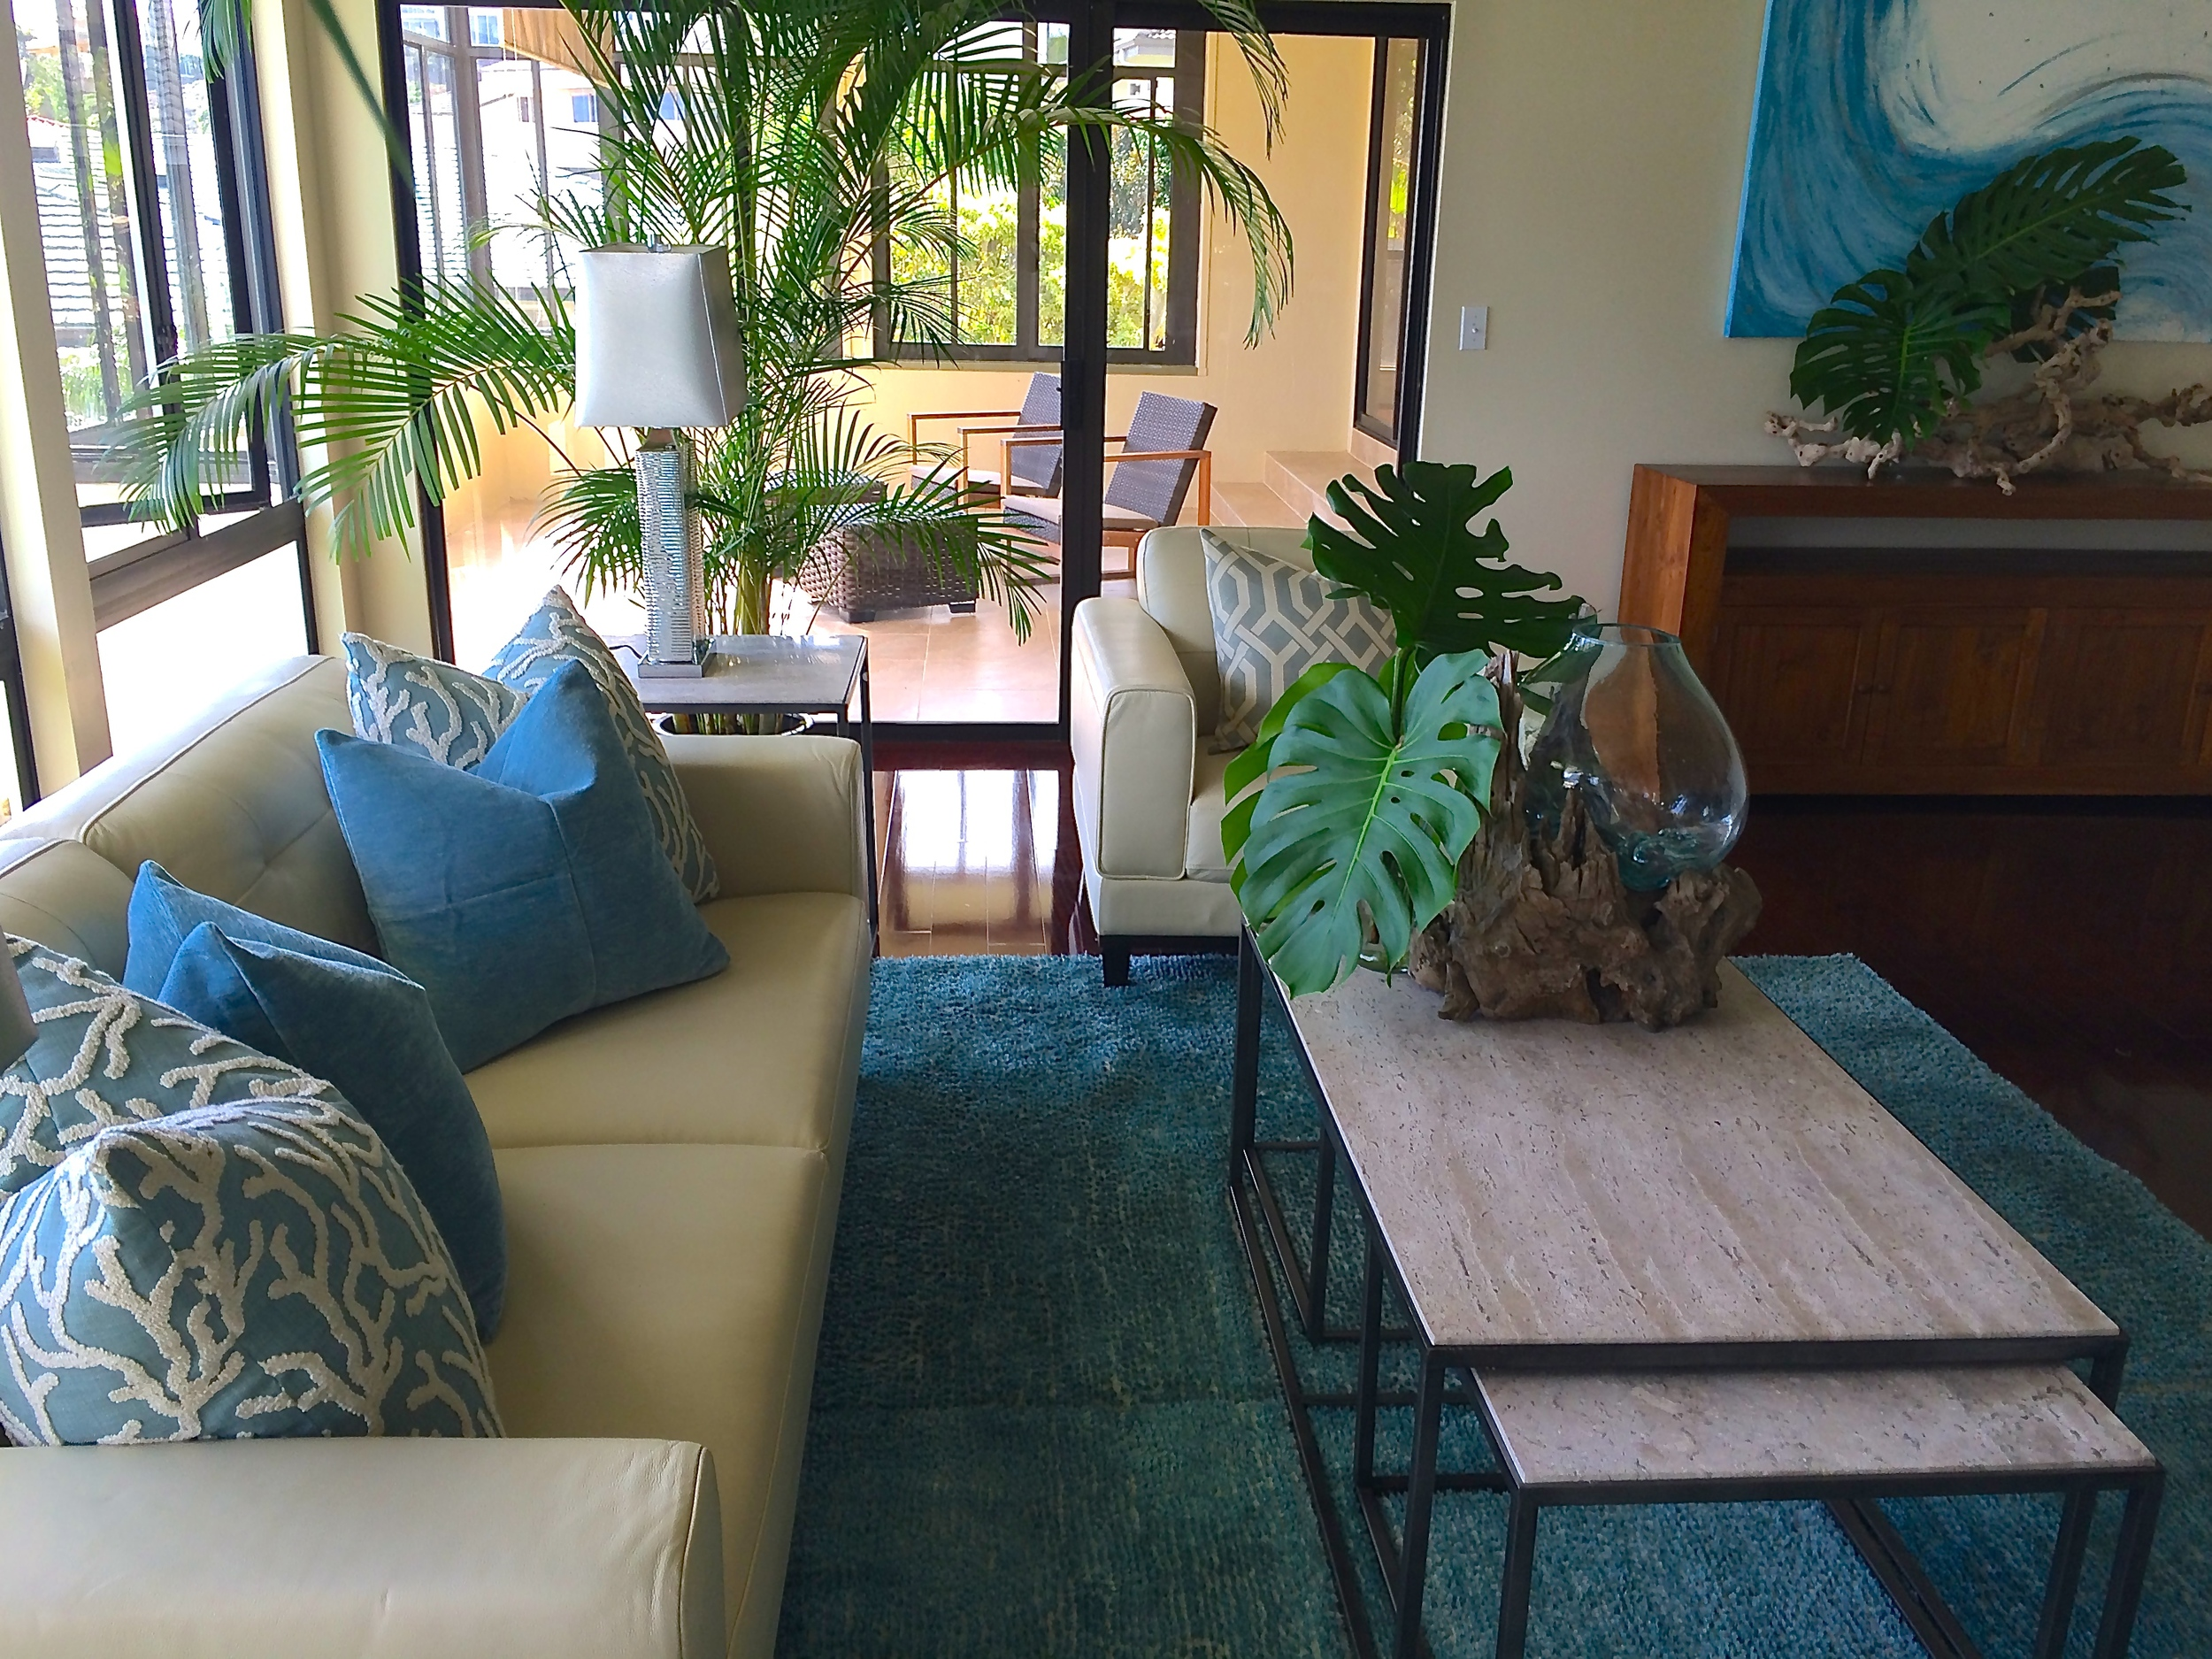 596 Puuikena Dr. Luxury Home Staging Hawaii, Home Staging Hawaii, Inouye Interiors LLC,Best Home Stagers Hawaii, Home Stagers in Hawaii, Stagers Hawaii, Home Stager Hawaii, Luxury Home Stager Hawai